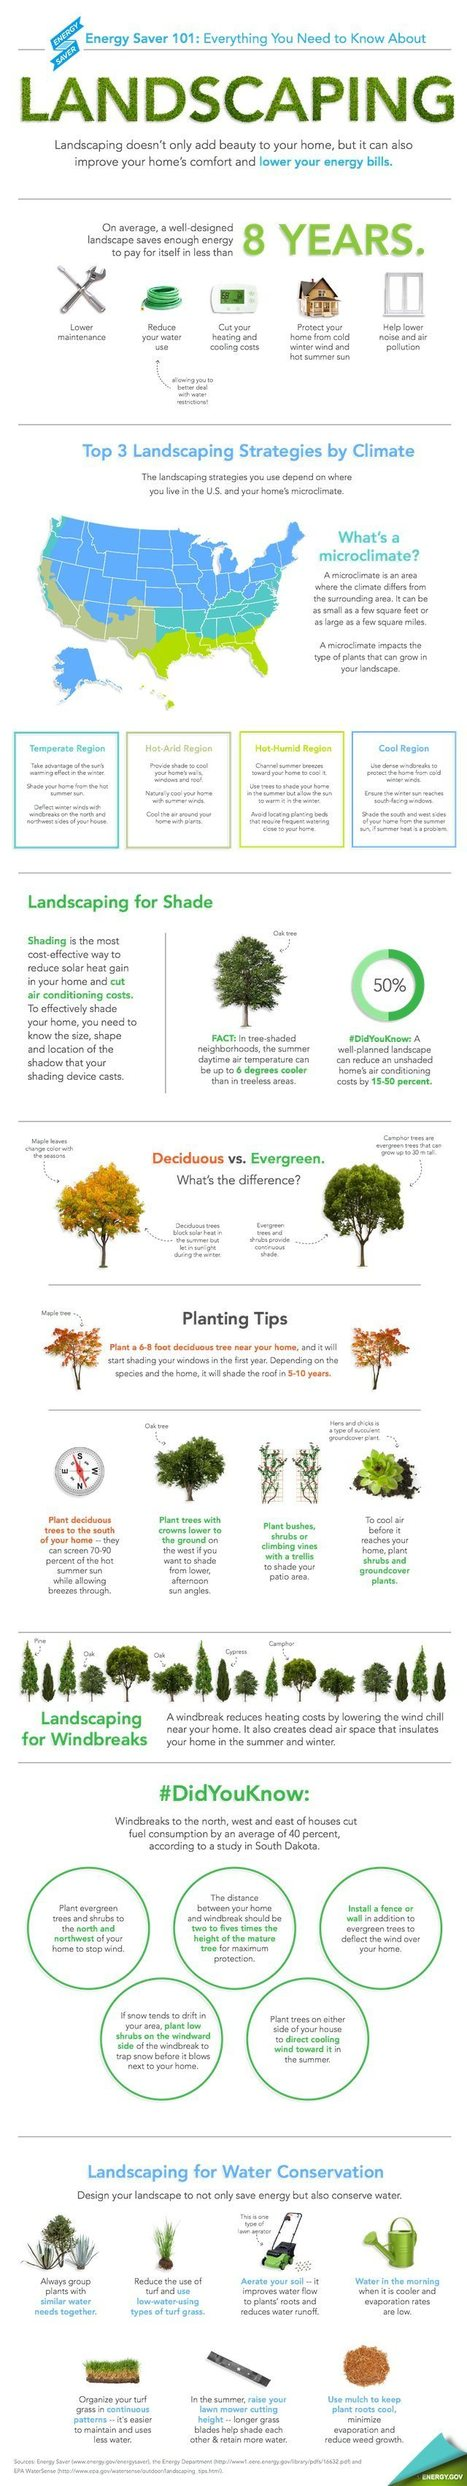 Smart Landscaping Tips To Help You Save Energy (INFOGRAPHIC) | green infographics | Scoop.it